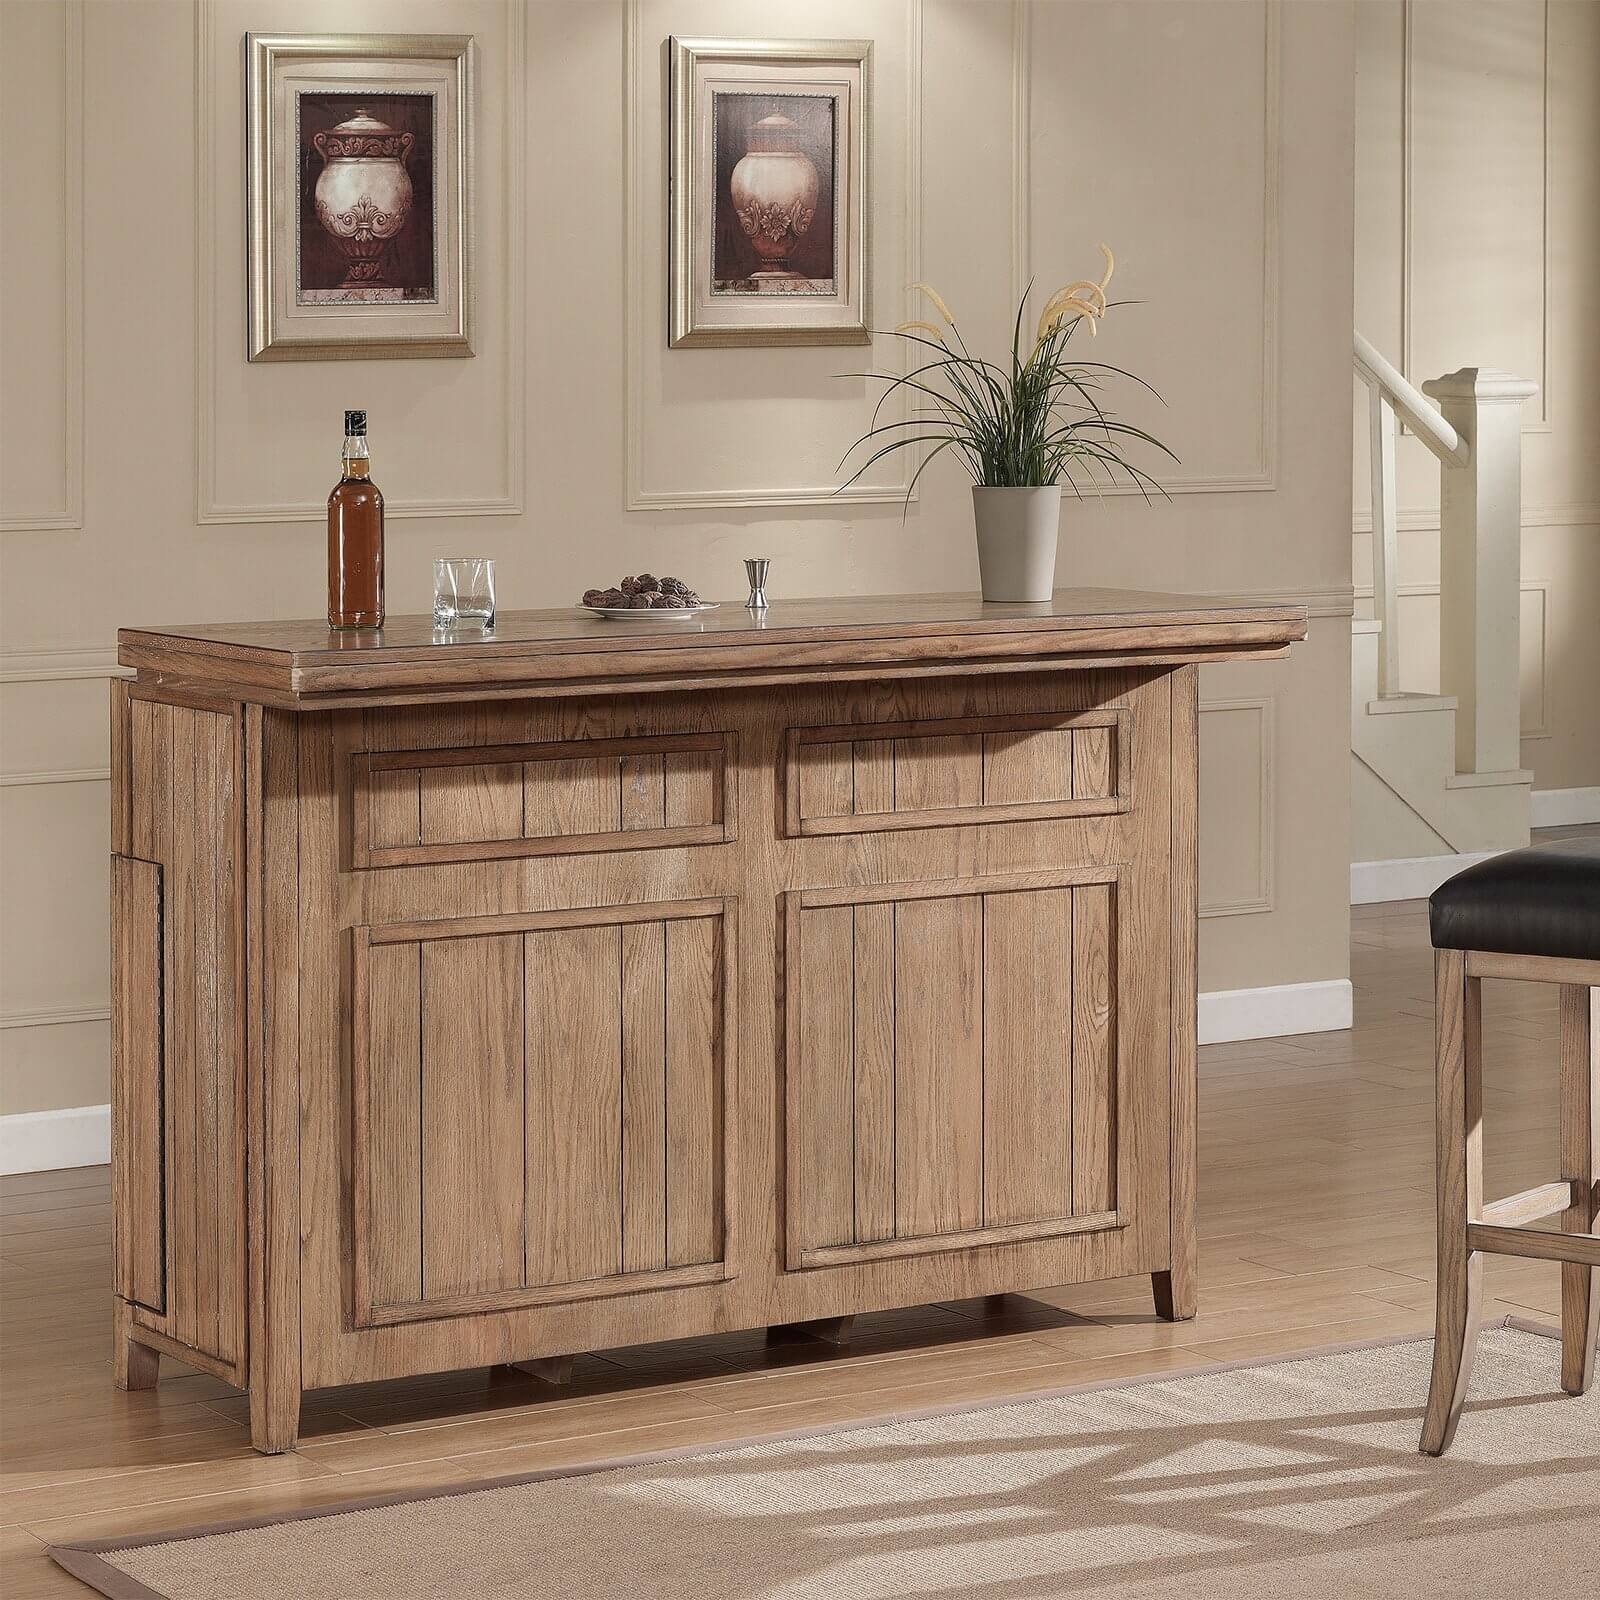 Weathered oak bar cabinet